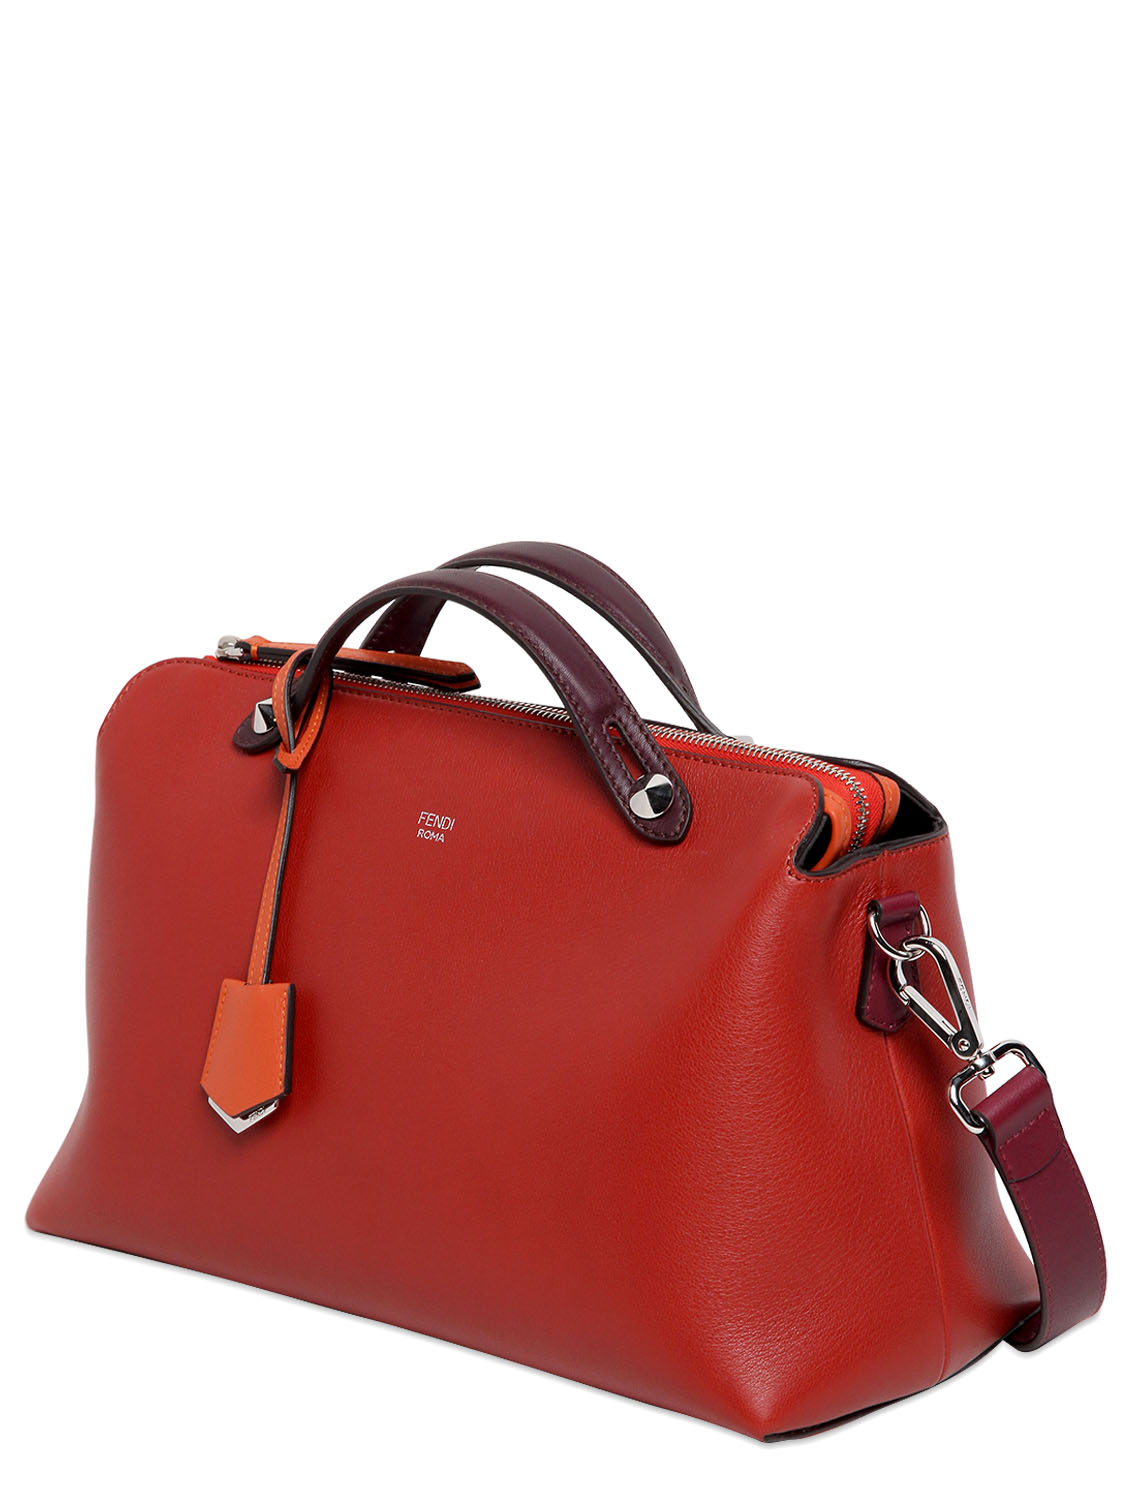 ae2af67b1347 Lyst - Fendi Large By The Way Leather Bag in Red